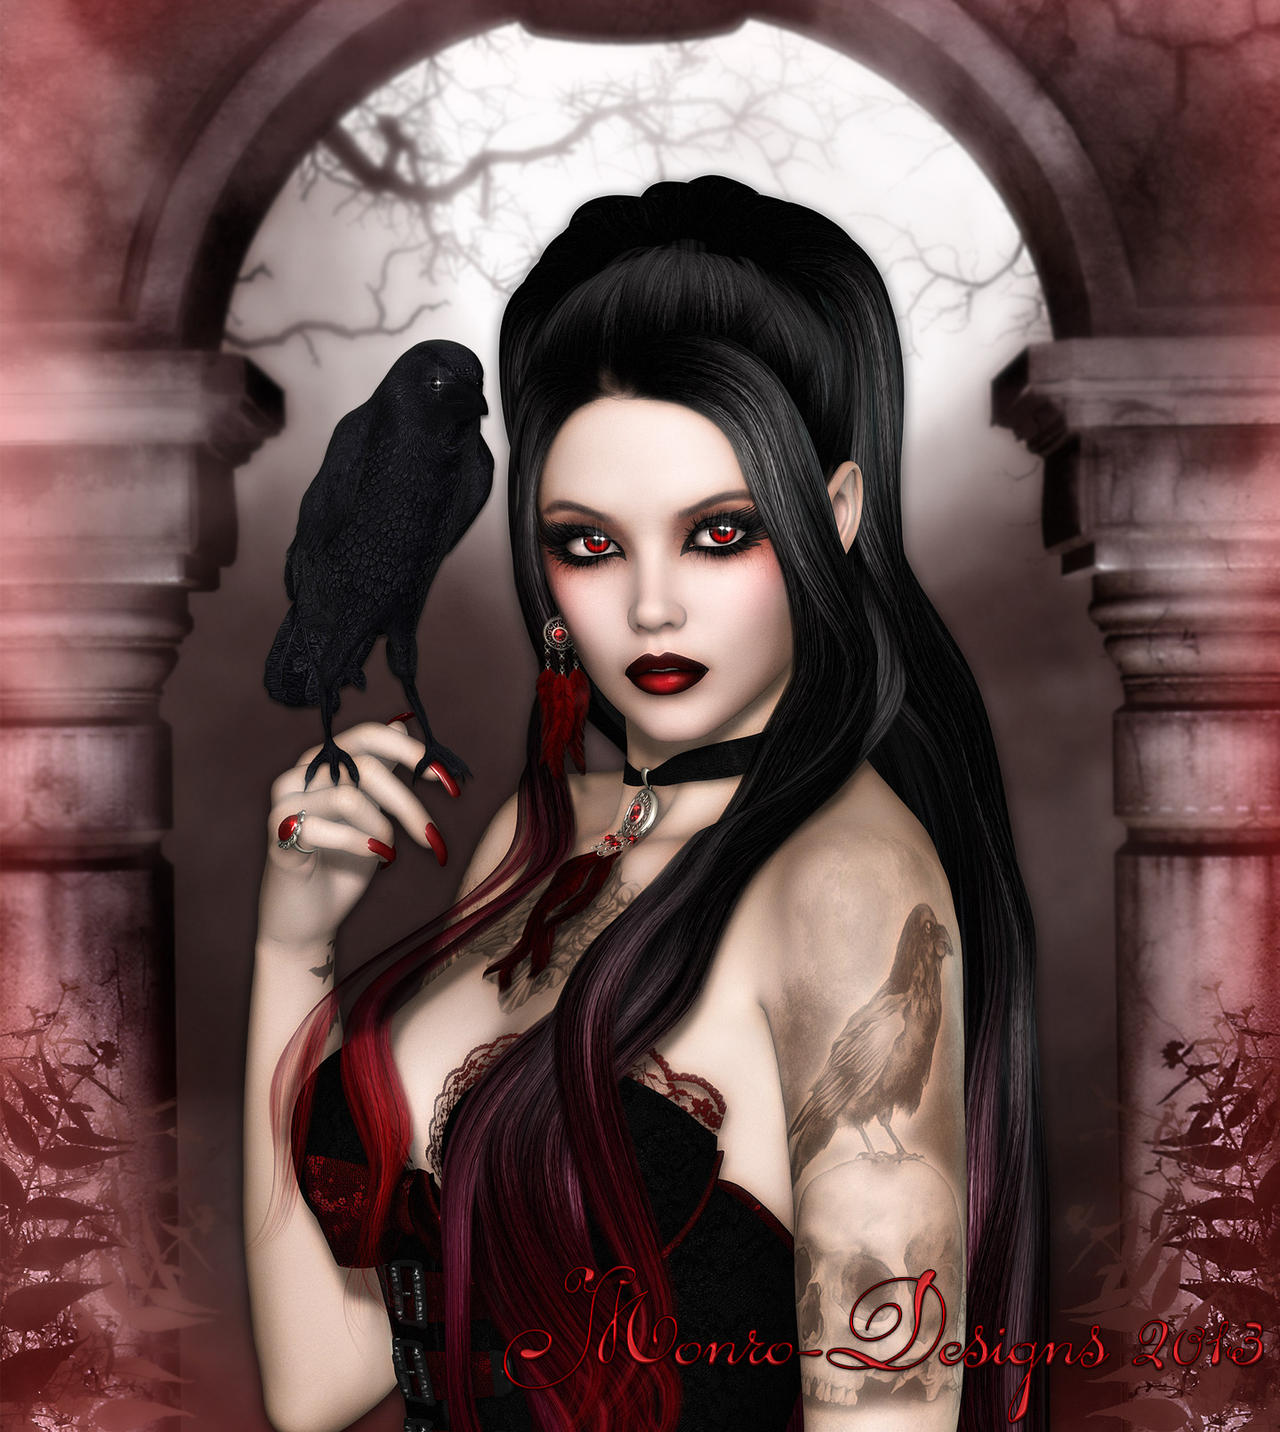 Corvena by monro designs on deviantart for Gothic painting ideas